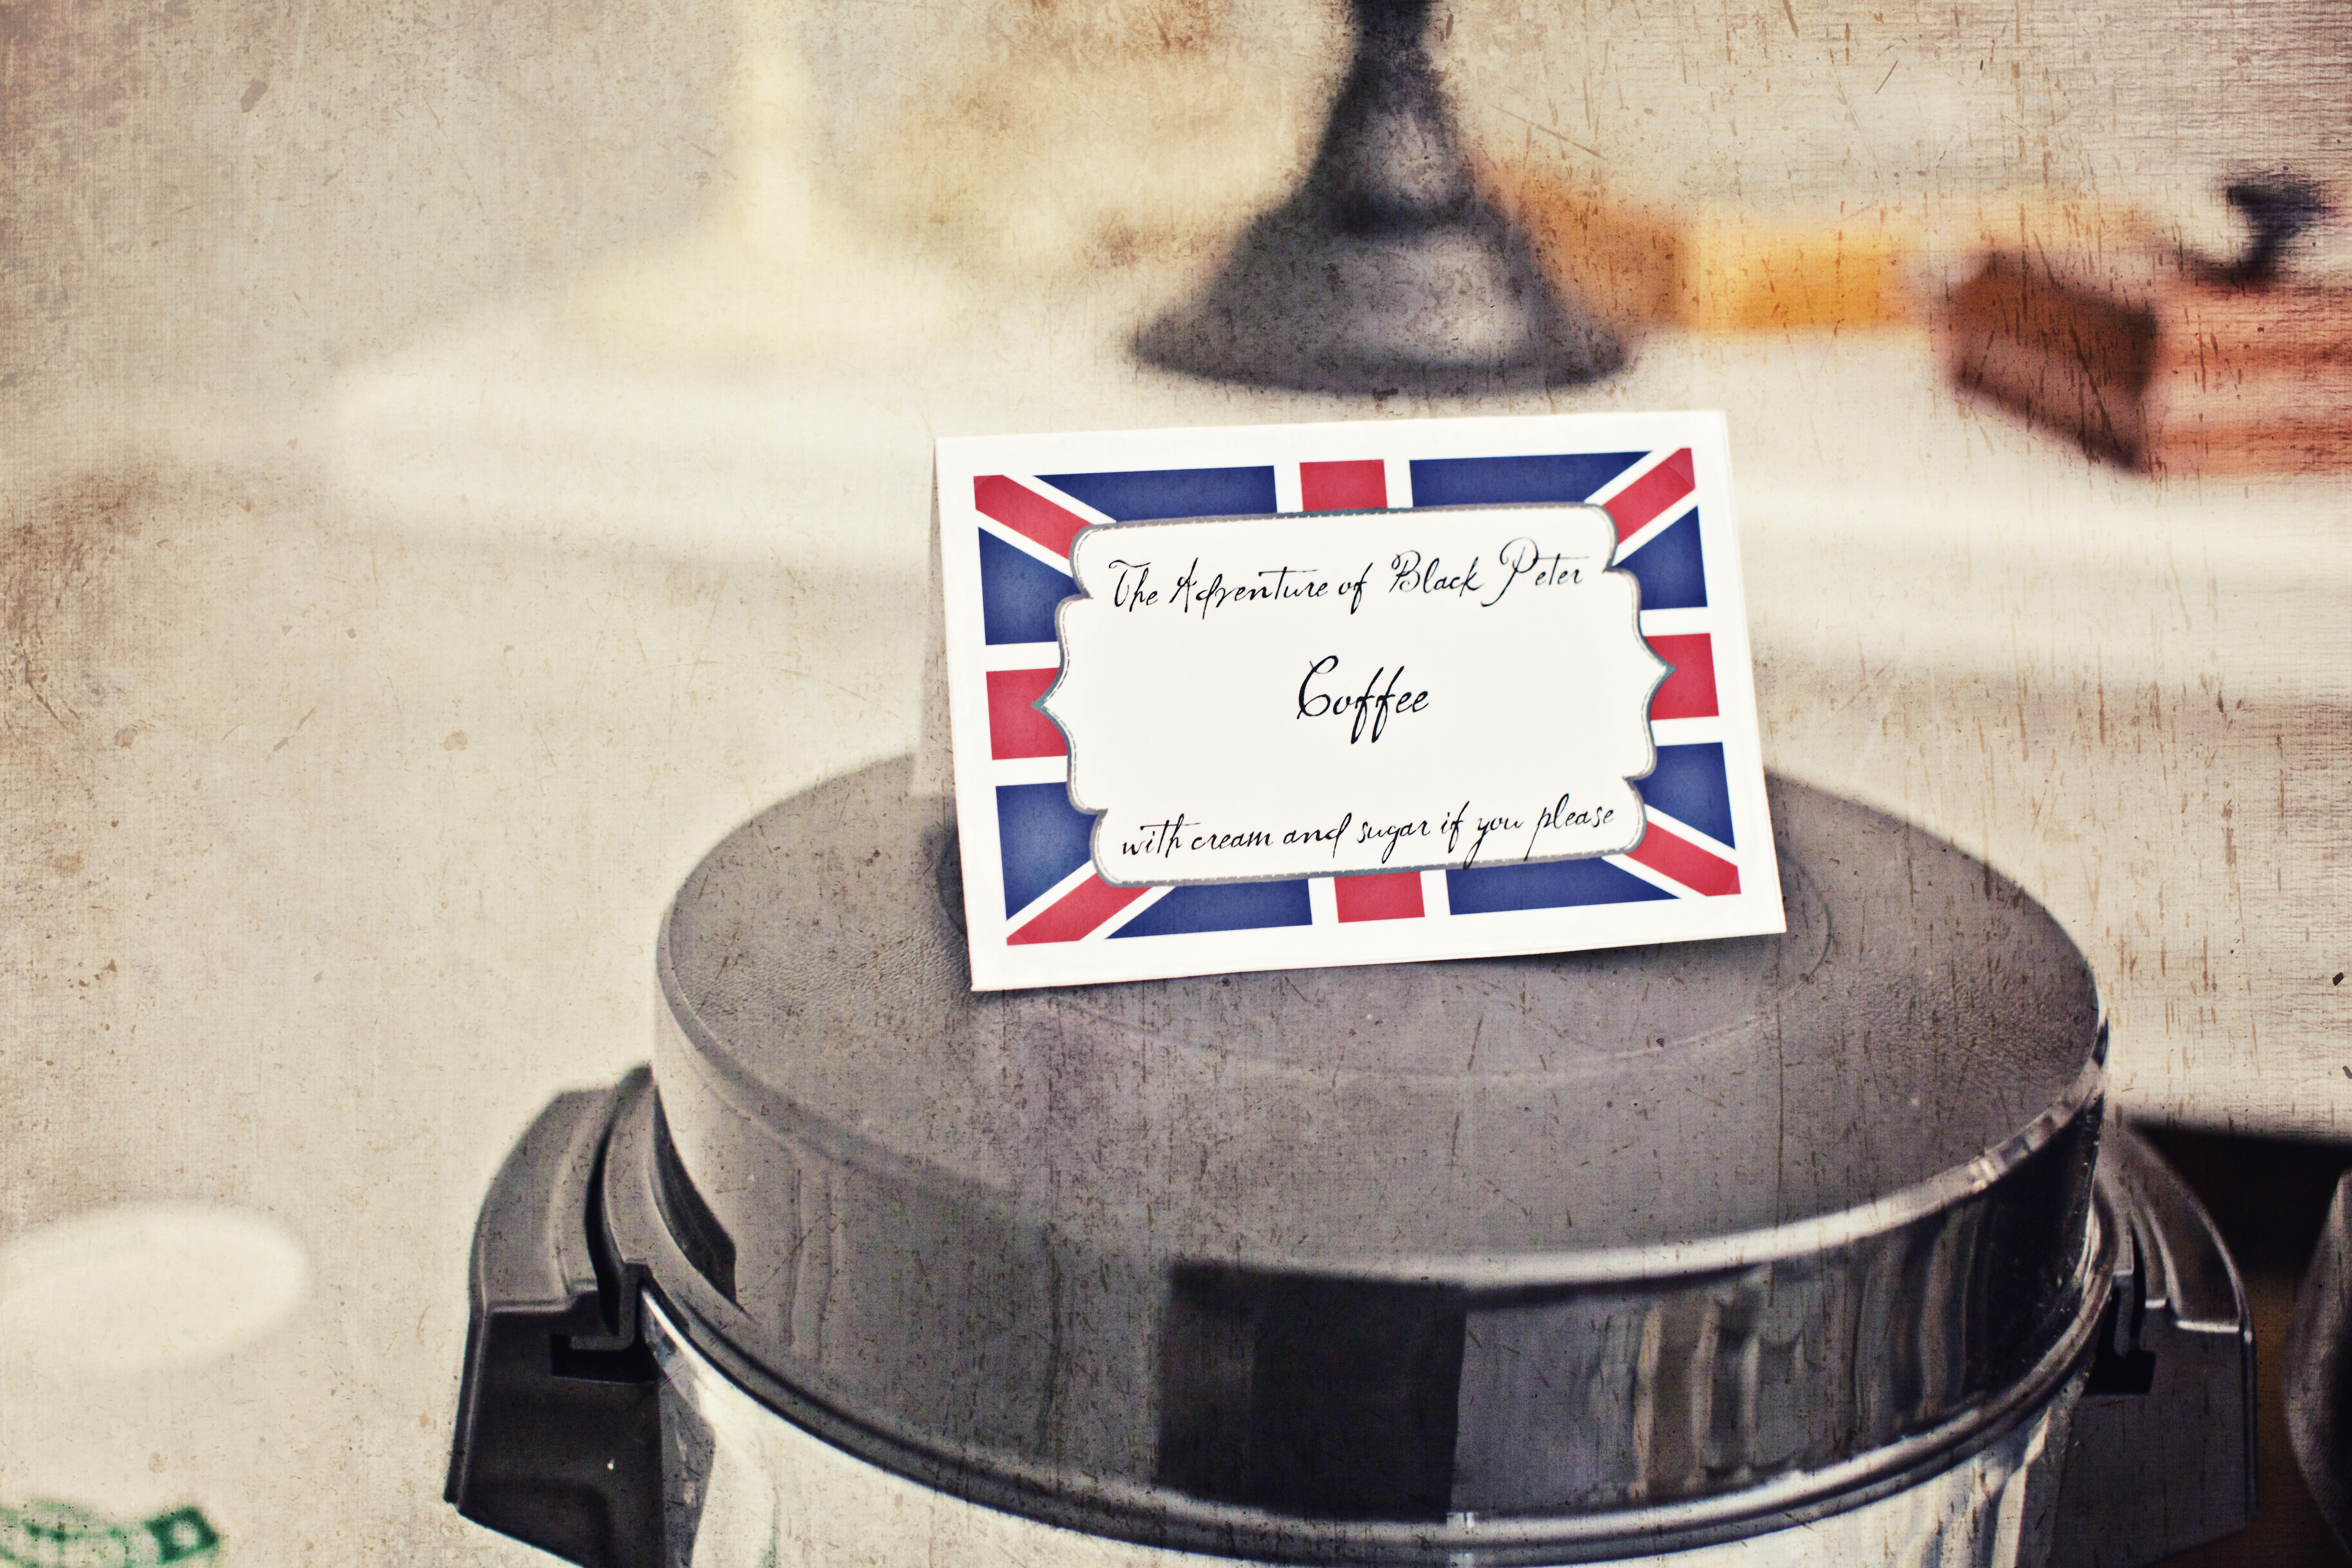 Moriarty, Sherlock Holmes, tea time, british party decor, sherlock holmes party, food labels